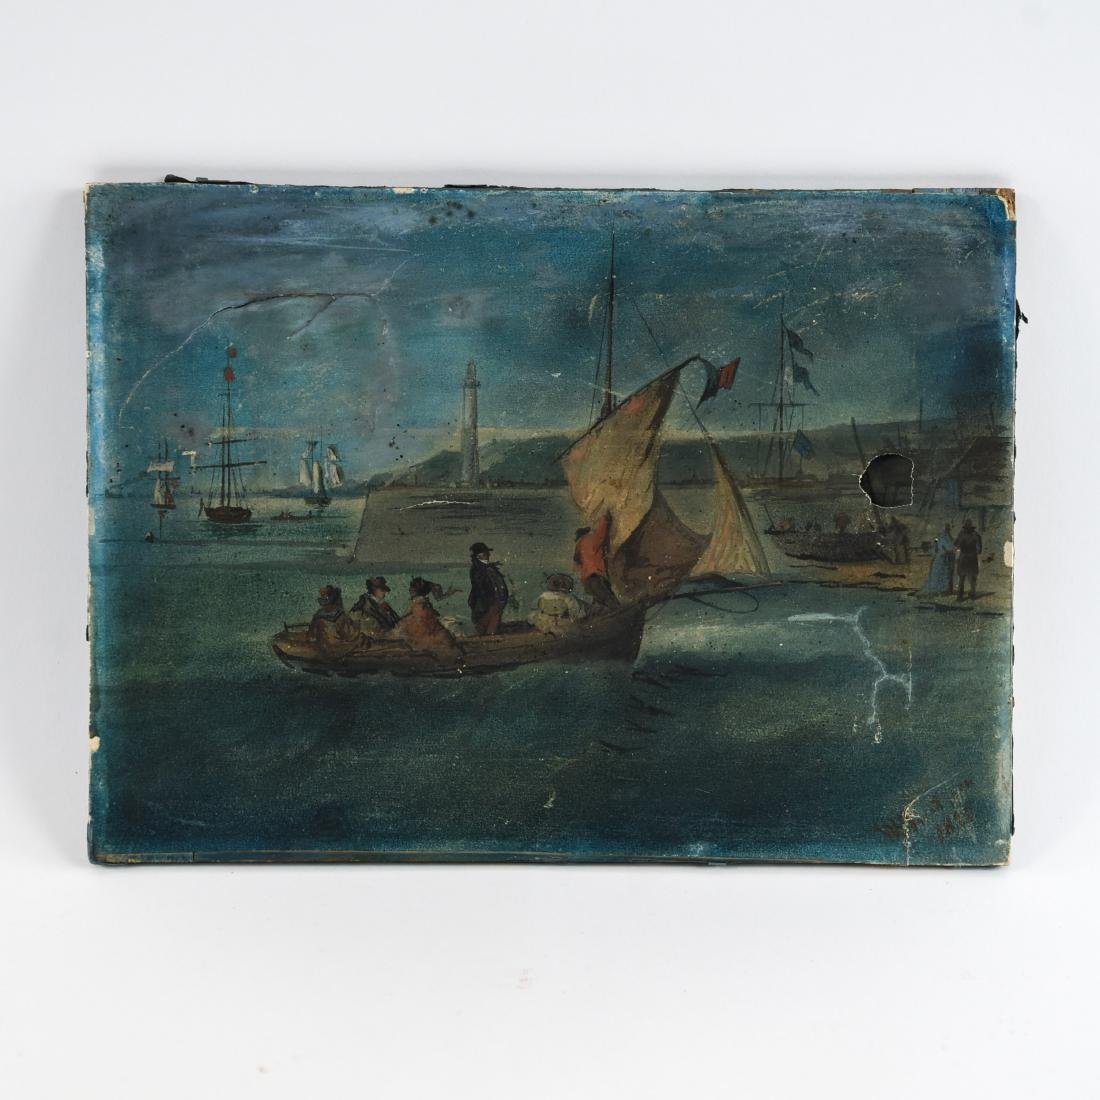 19TH C. SEASCAPE OIL ON PAPER